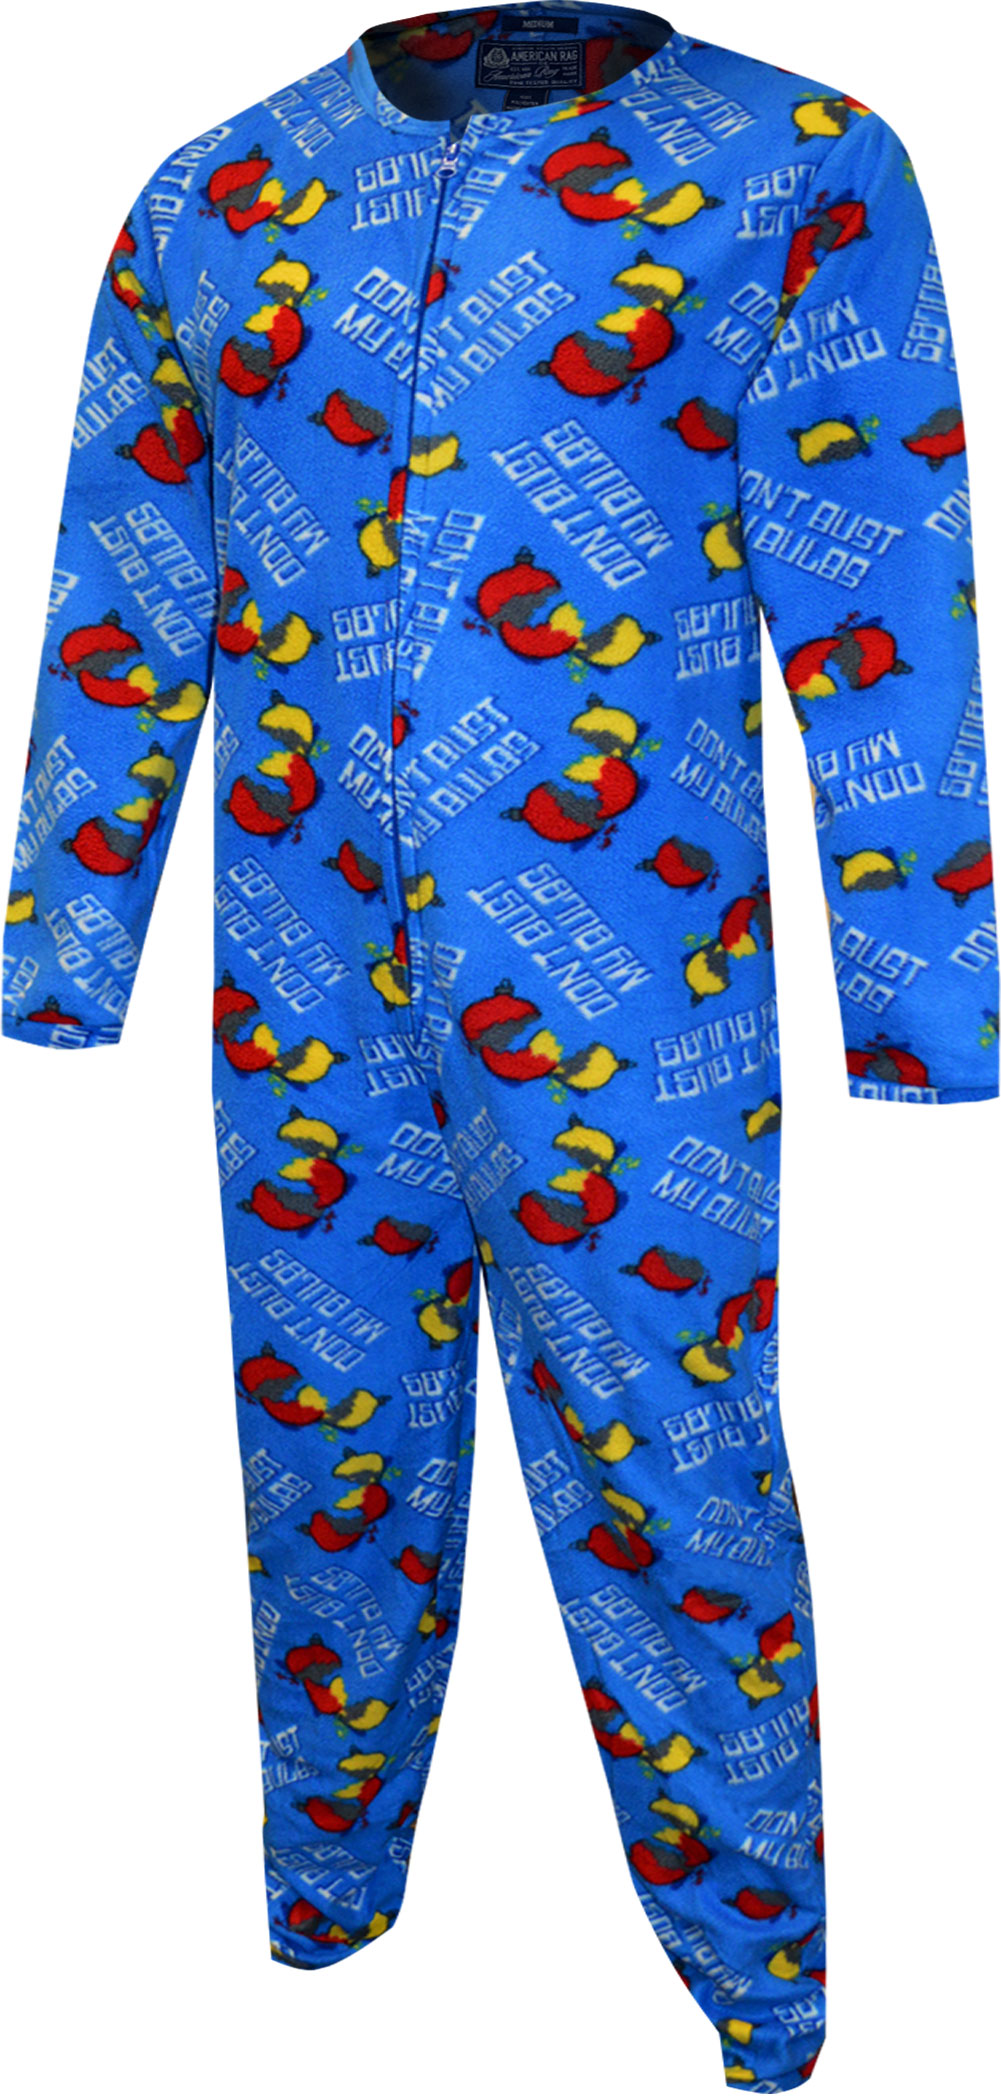 Image of Christmas Don't Bust My Bulbs One Piece Union Suit Pajama for men